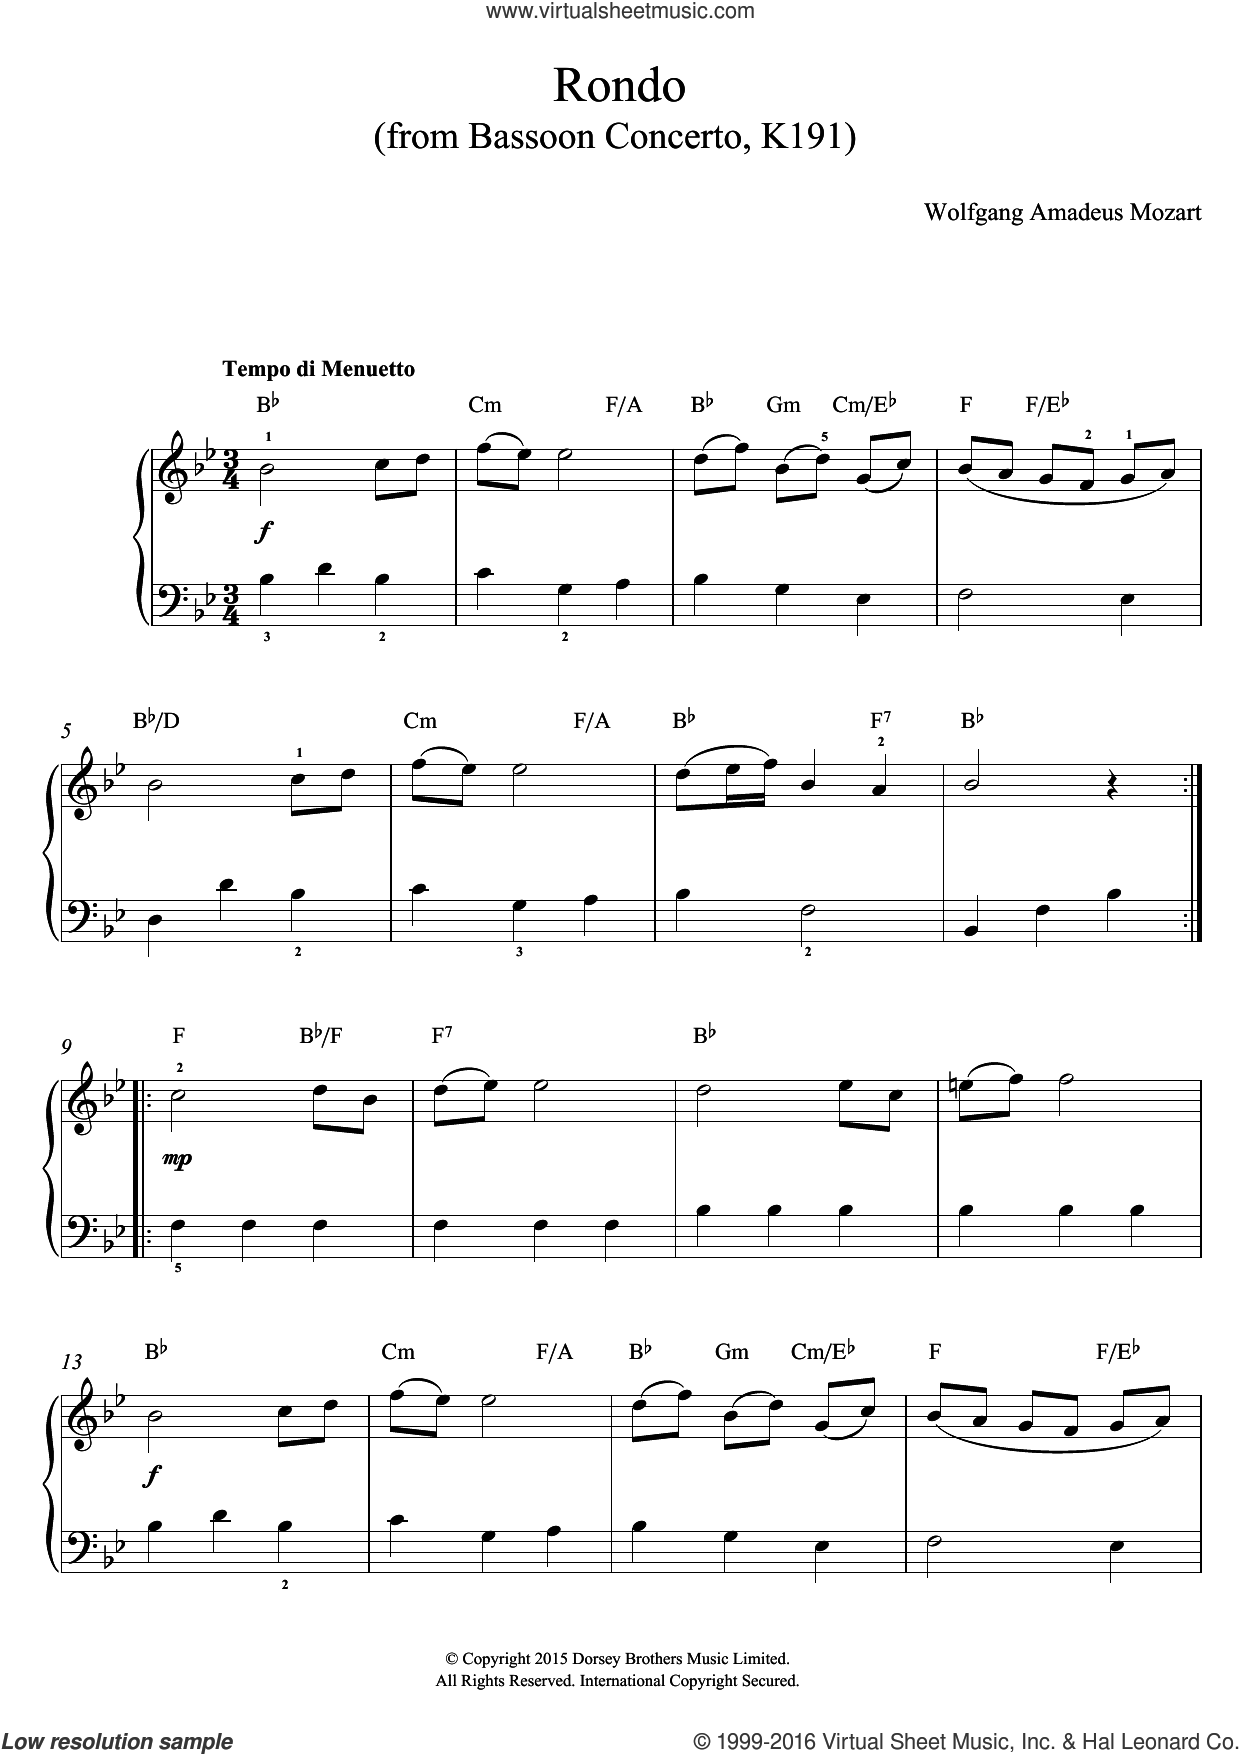 Rondo From Bassoon Concerto, K191 sheet music for voice, piano or guitar by Wolfgang Amadeus Mozart. Score Image Preview.